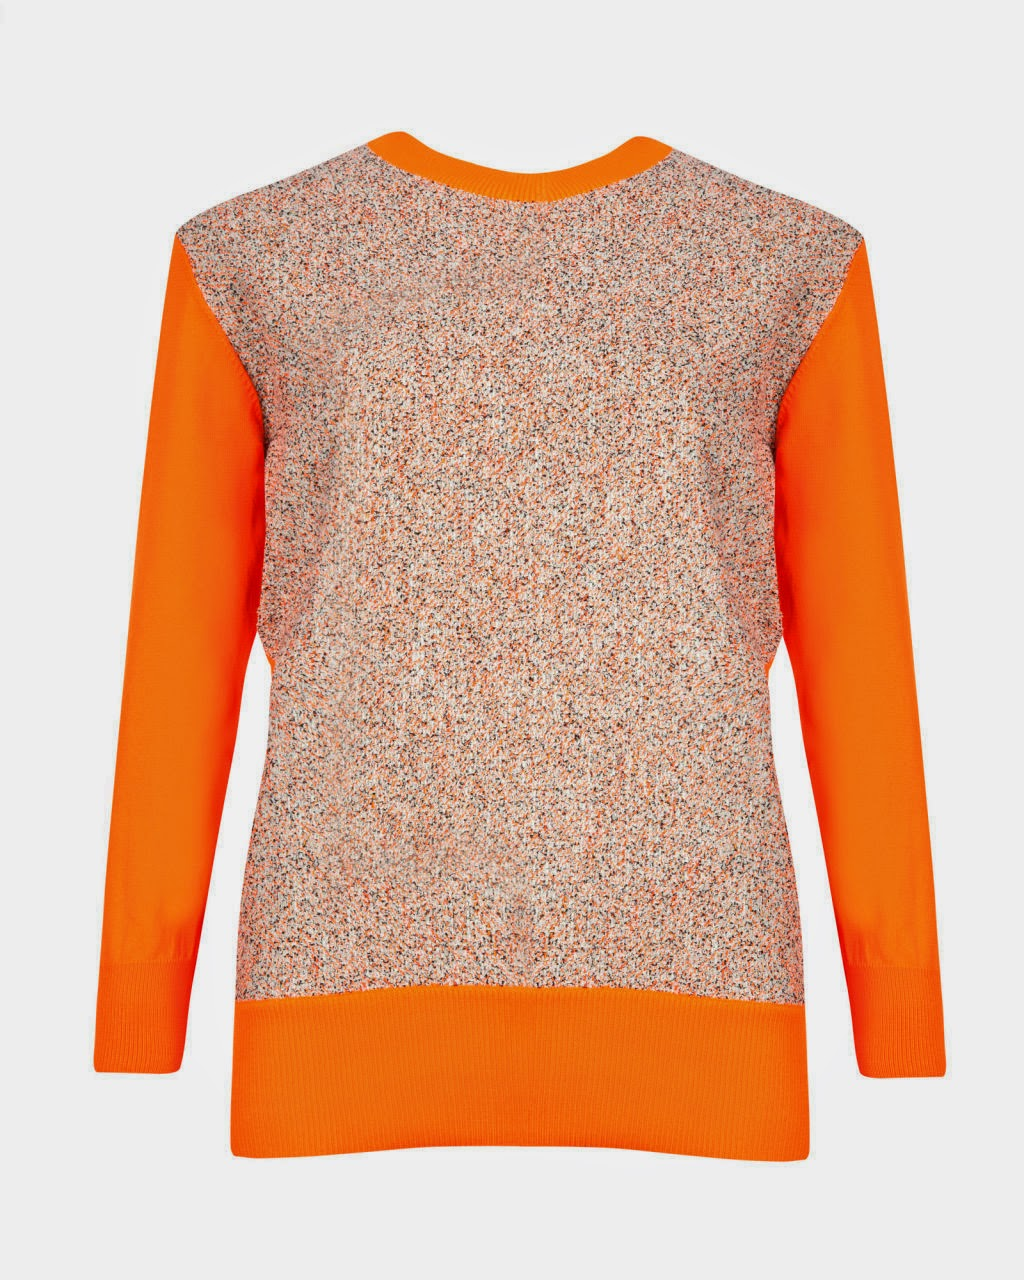 ted baker orange top